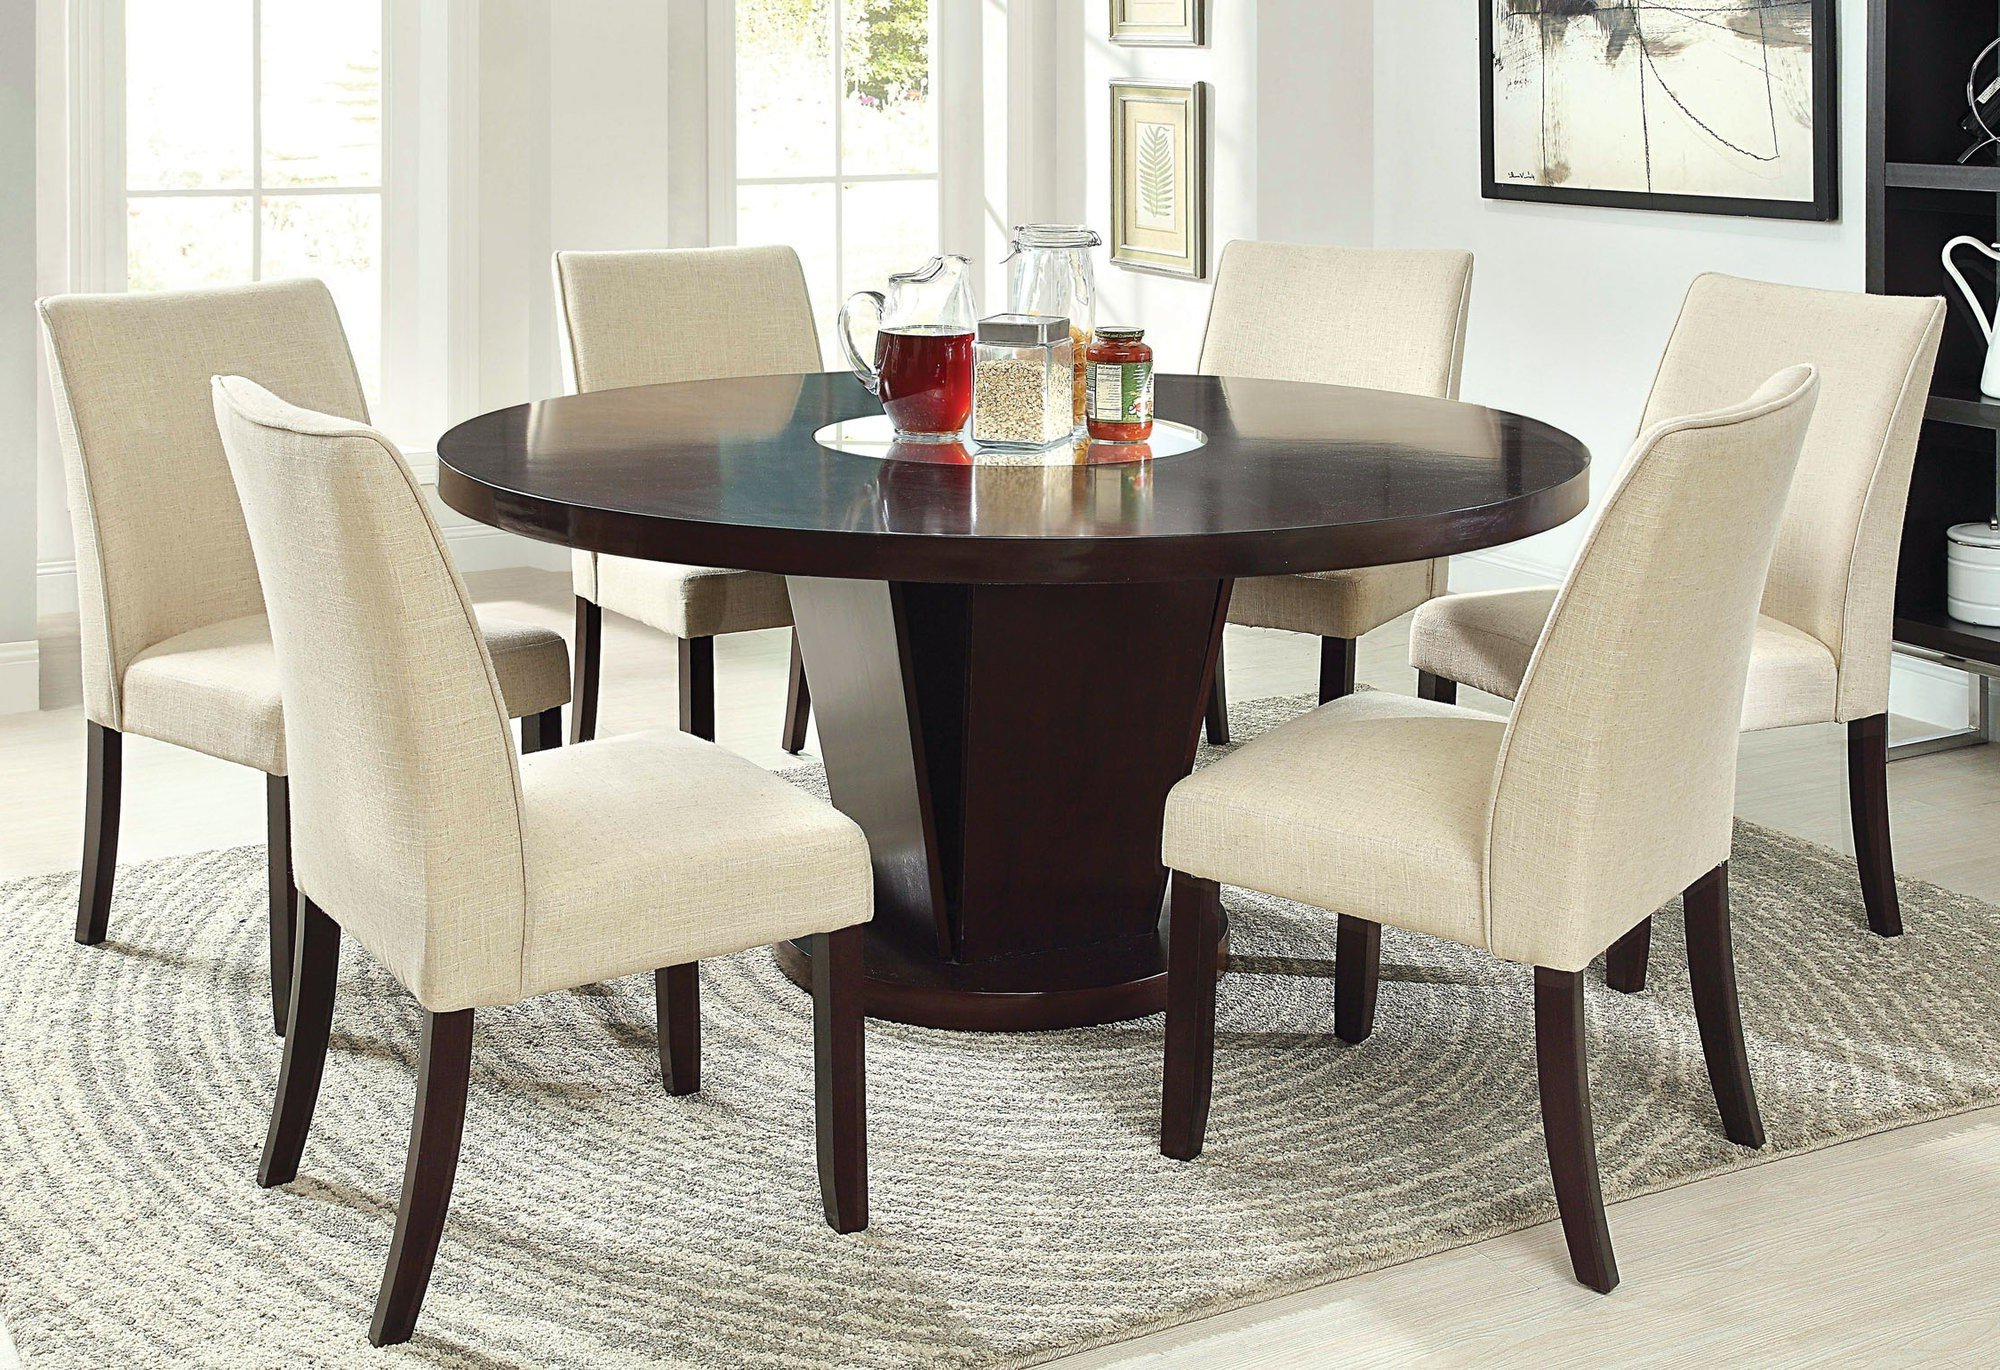 Fashionable 50+ Round Dining Table For 6 You'll Love In 2020 – Visual Hunt In Solid Wood Circular Dining Tables White (View 14 of 25)